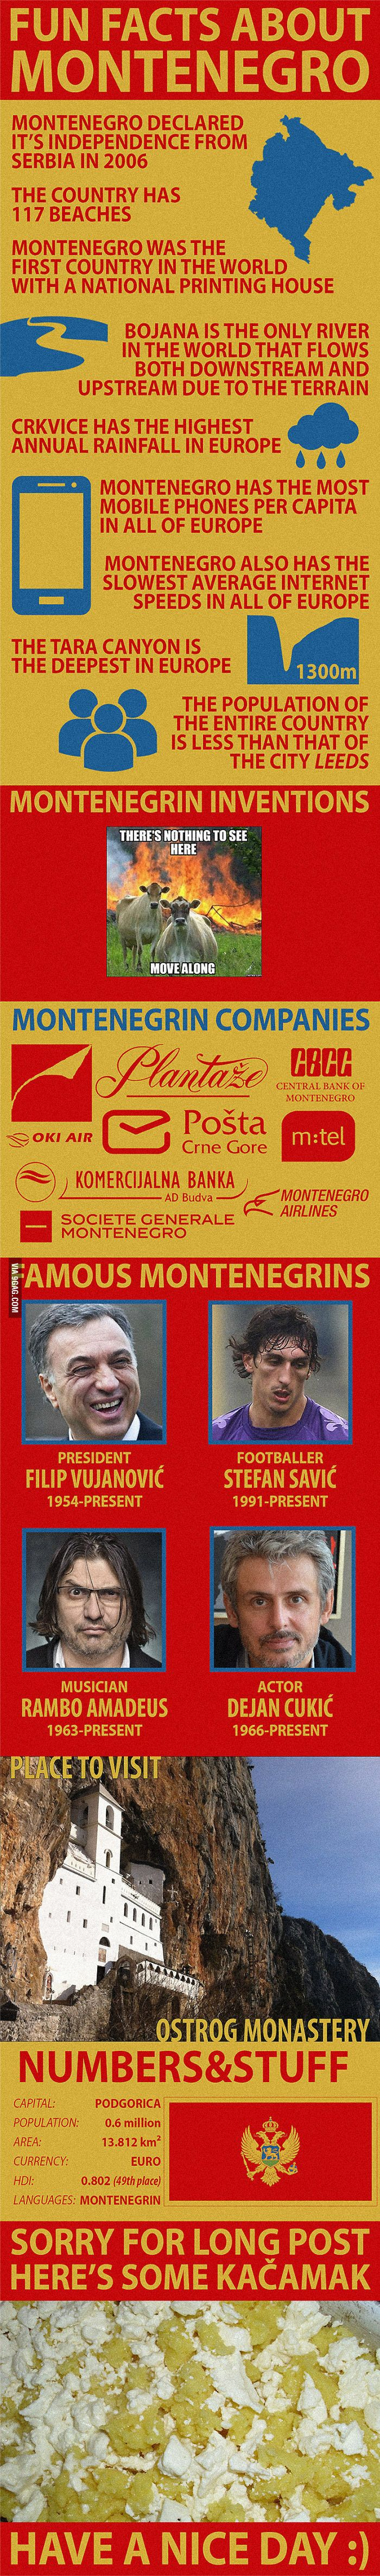 Fun Facts about Montenegro - 9GAG